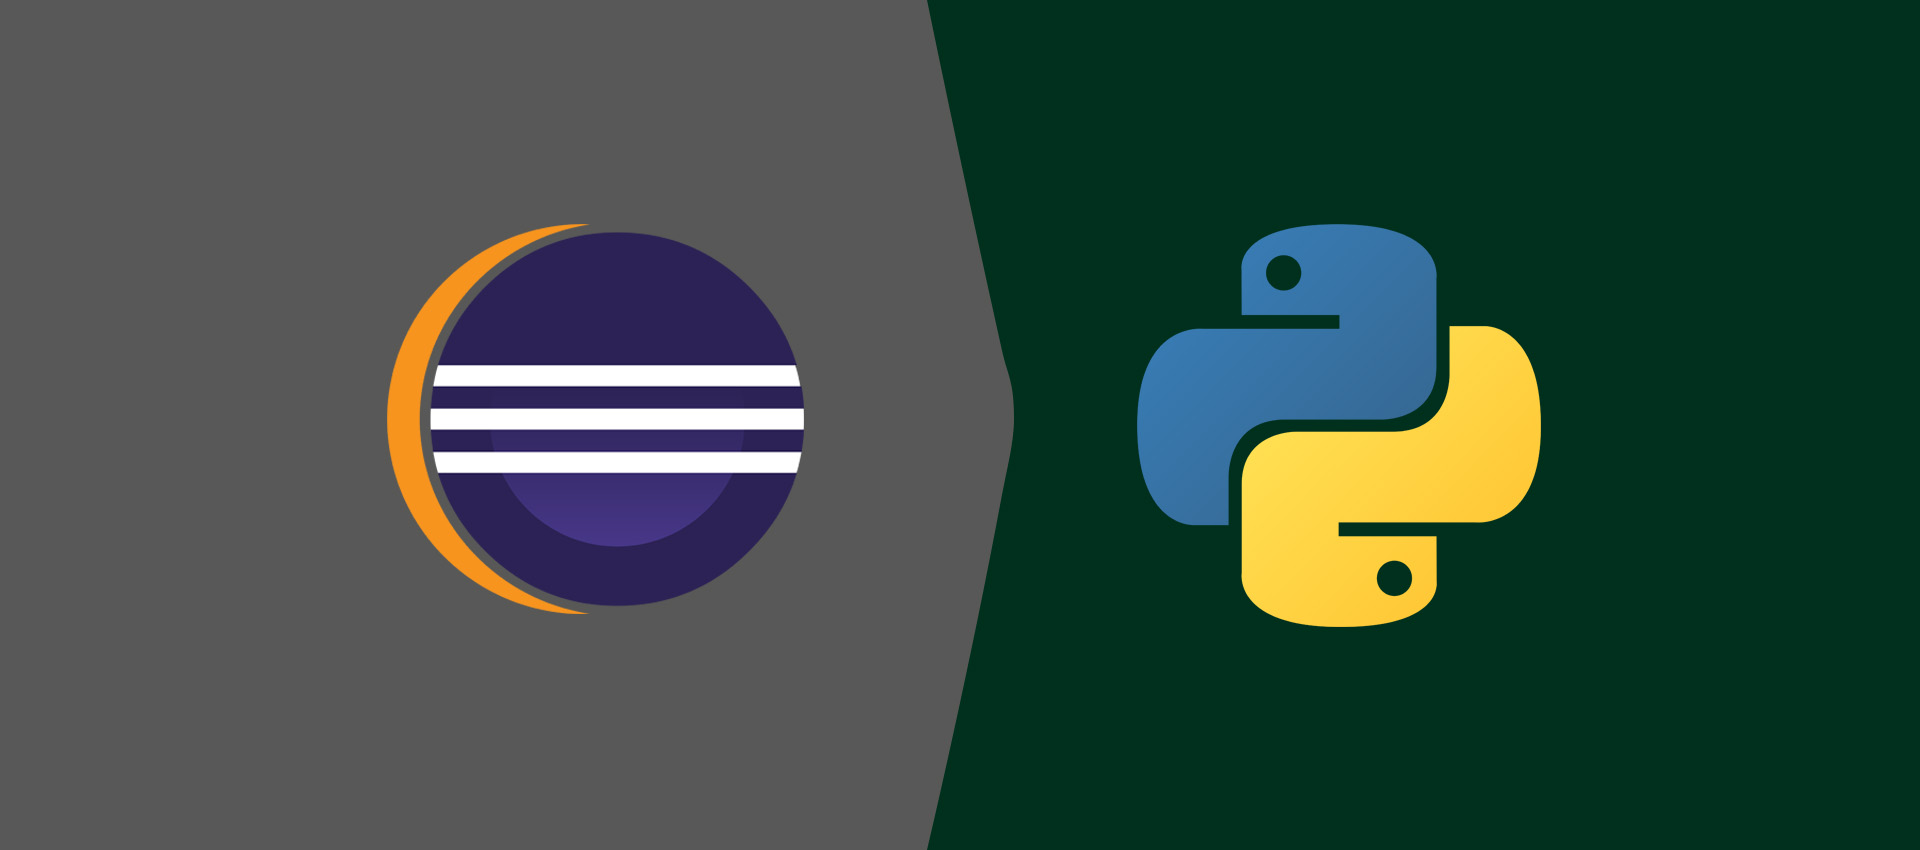 How To Install LiClipse for Python On Windows